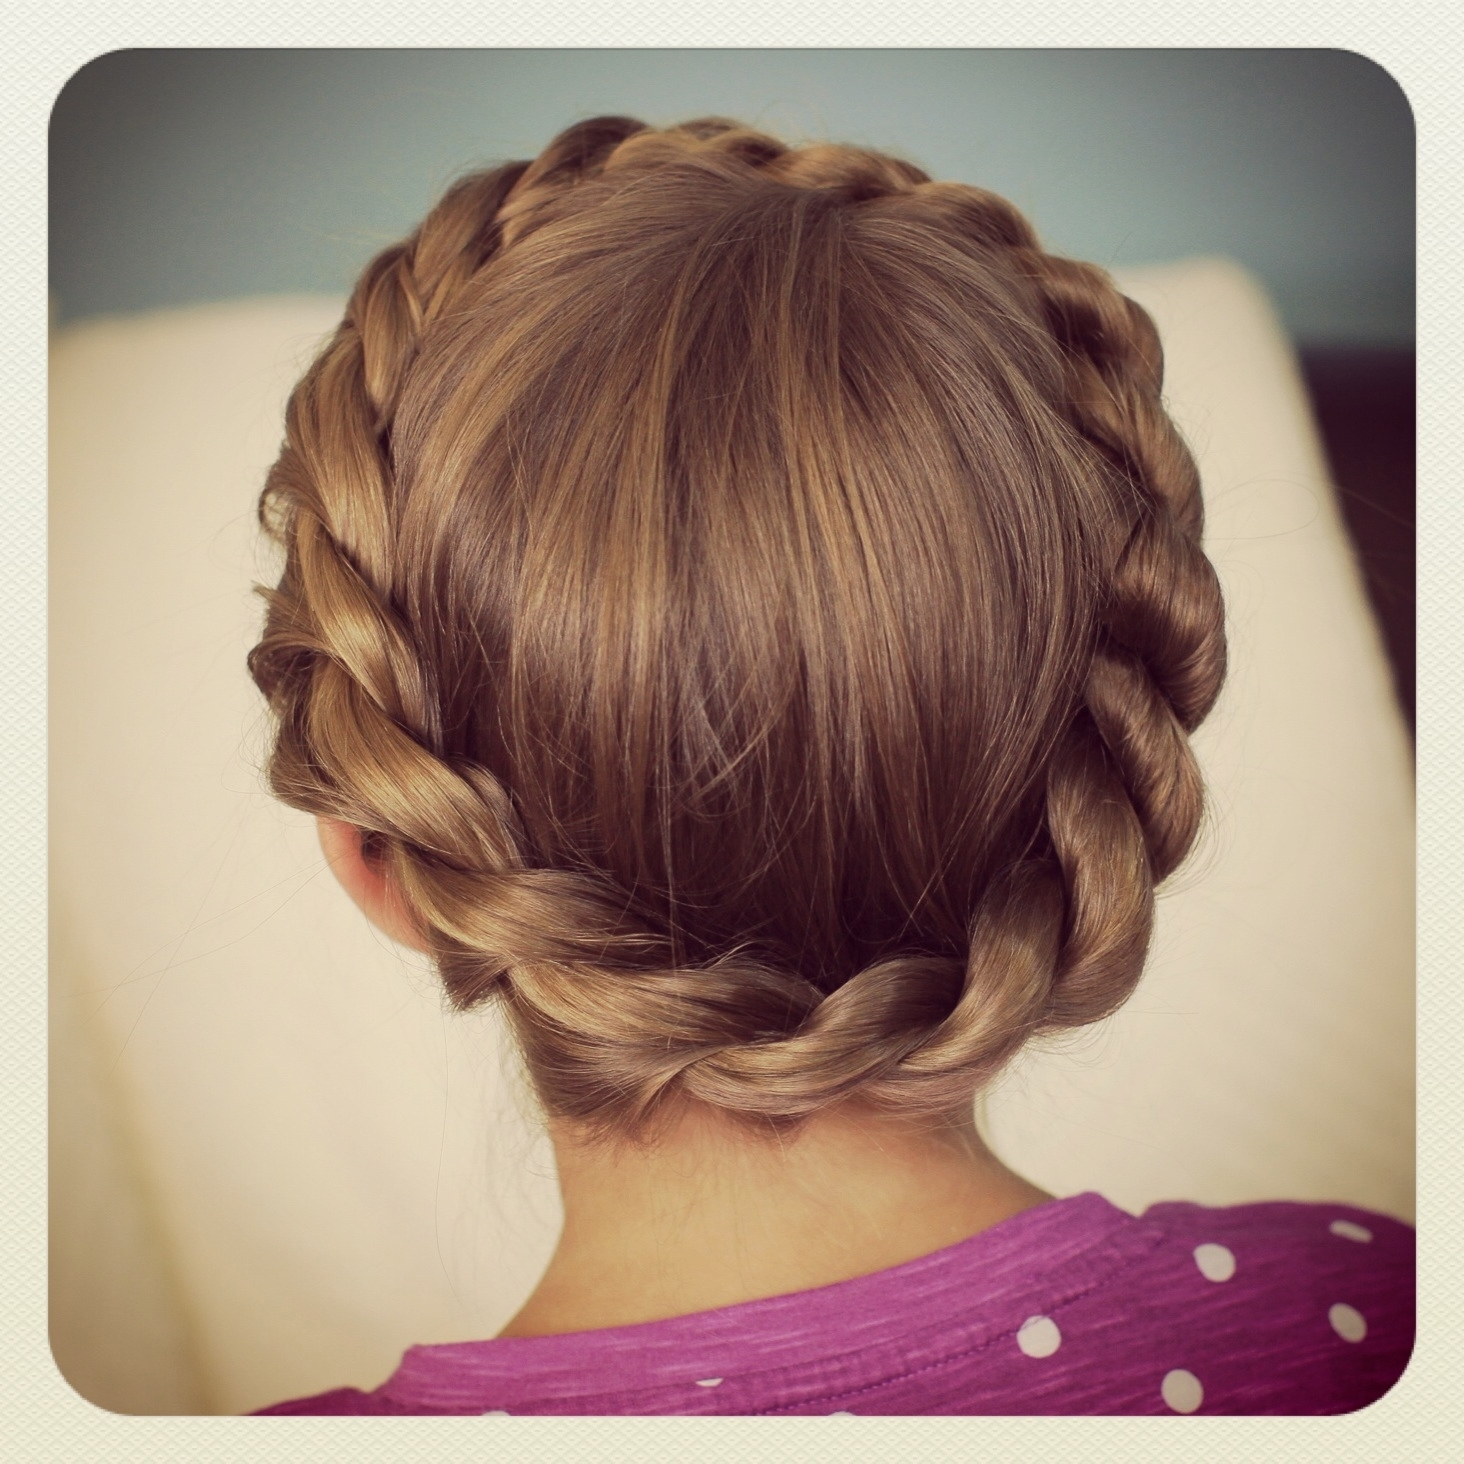 Crown Rope Twist Braid | Updo Hairstyles | Cute Girls Hairstyles Within Braided Crown Updo Hairstyles (View 14 of 15)